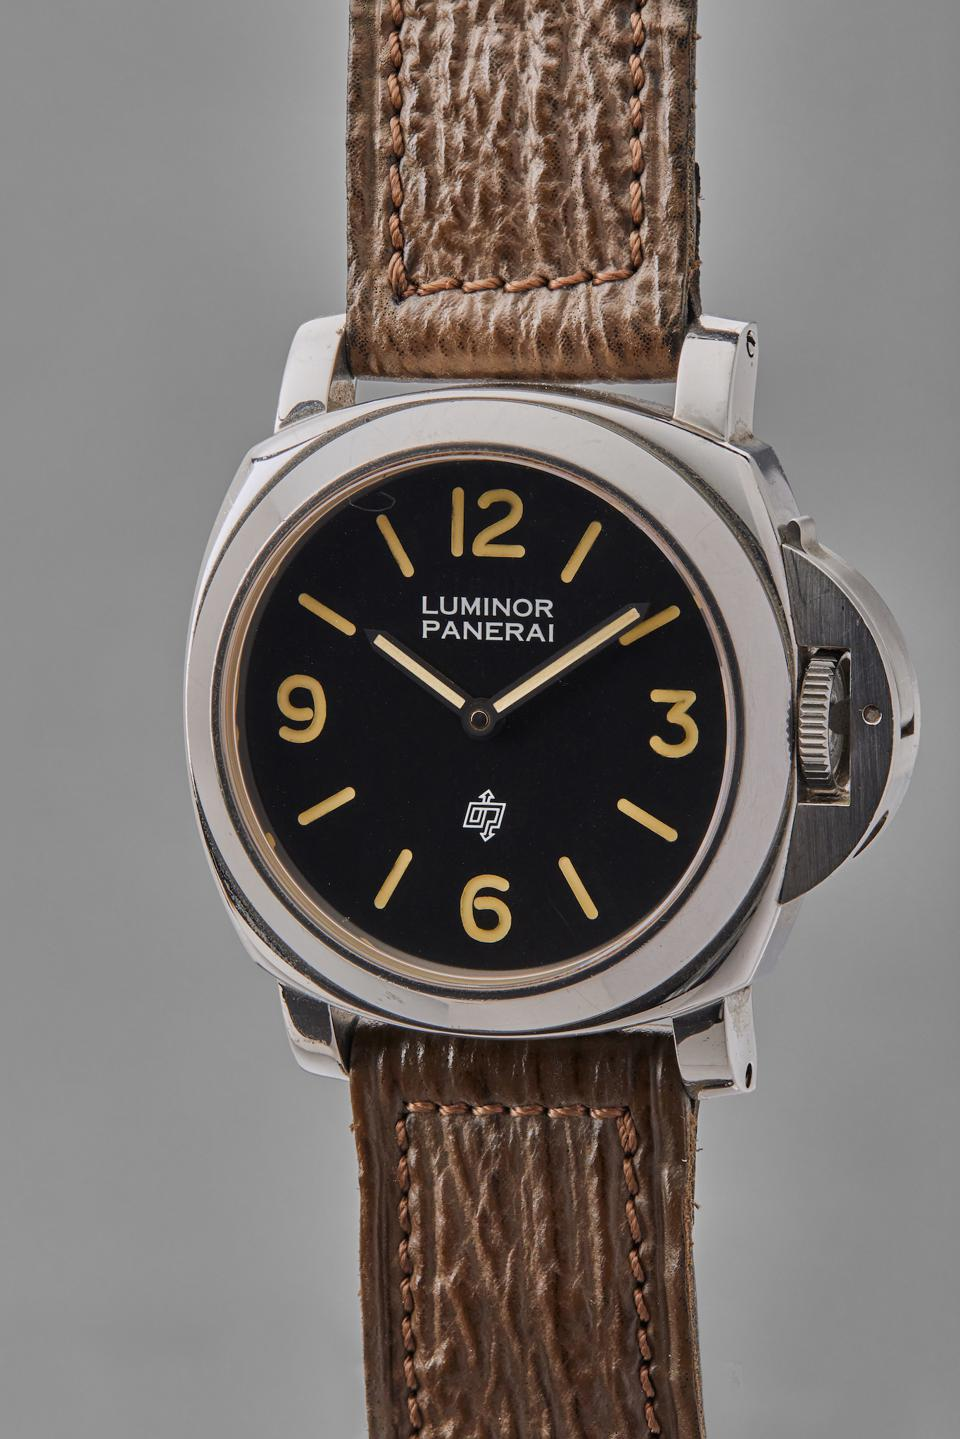 Sylvester Stallone's Panerai Luminor, worn in the movie Daylight, up for auction at Phillips.